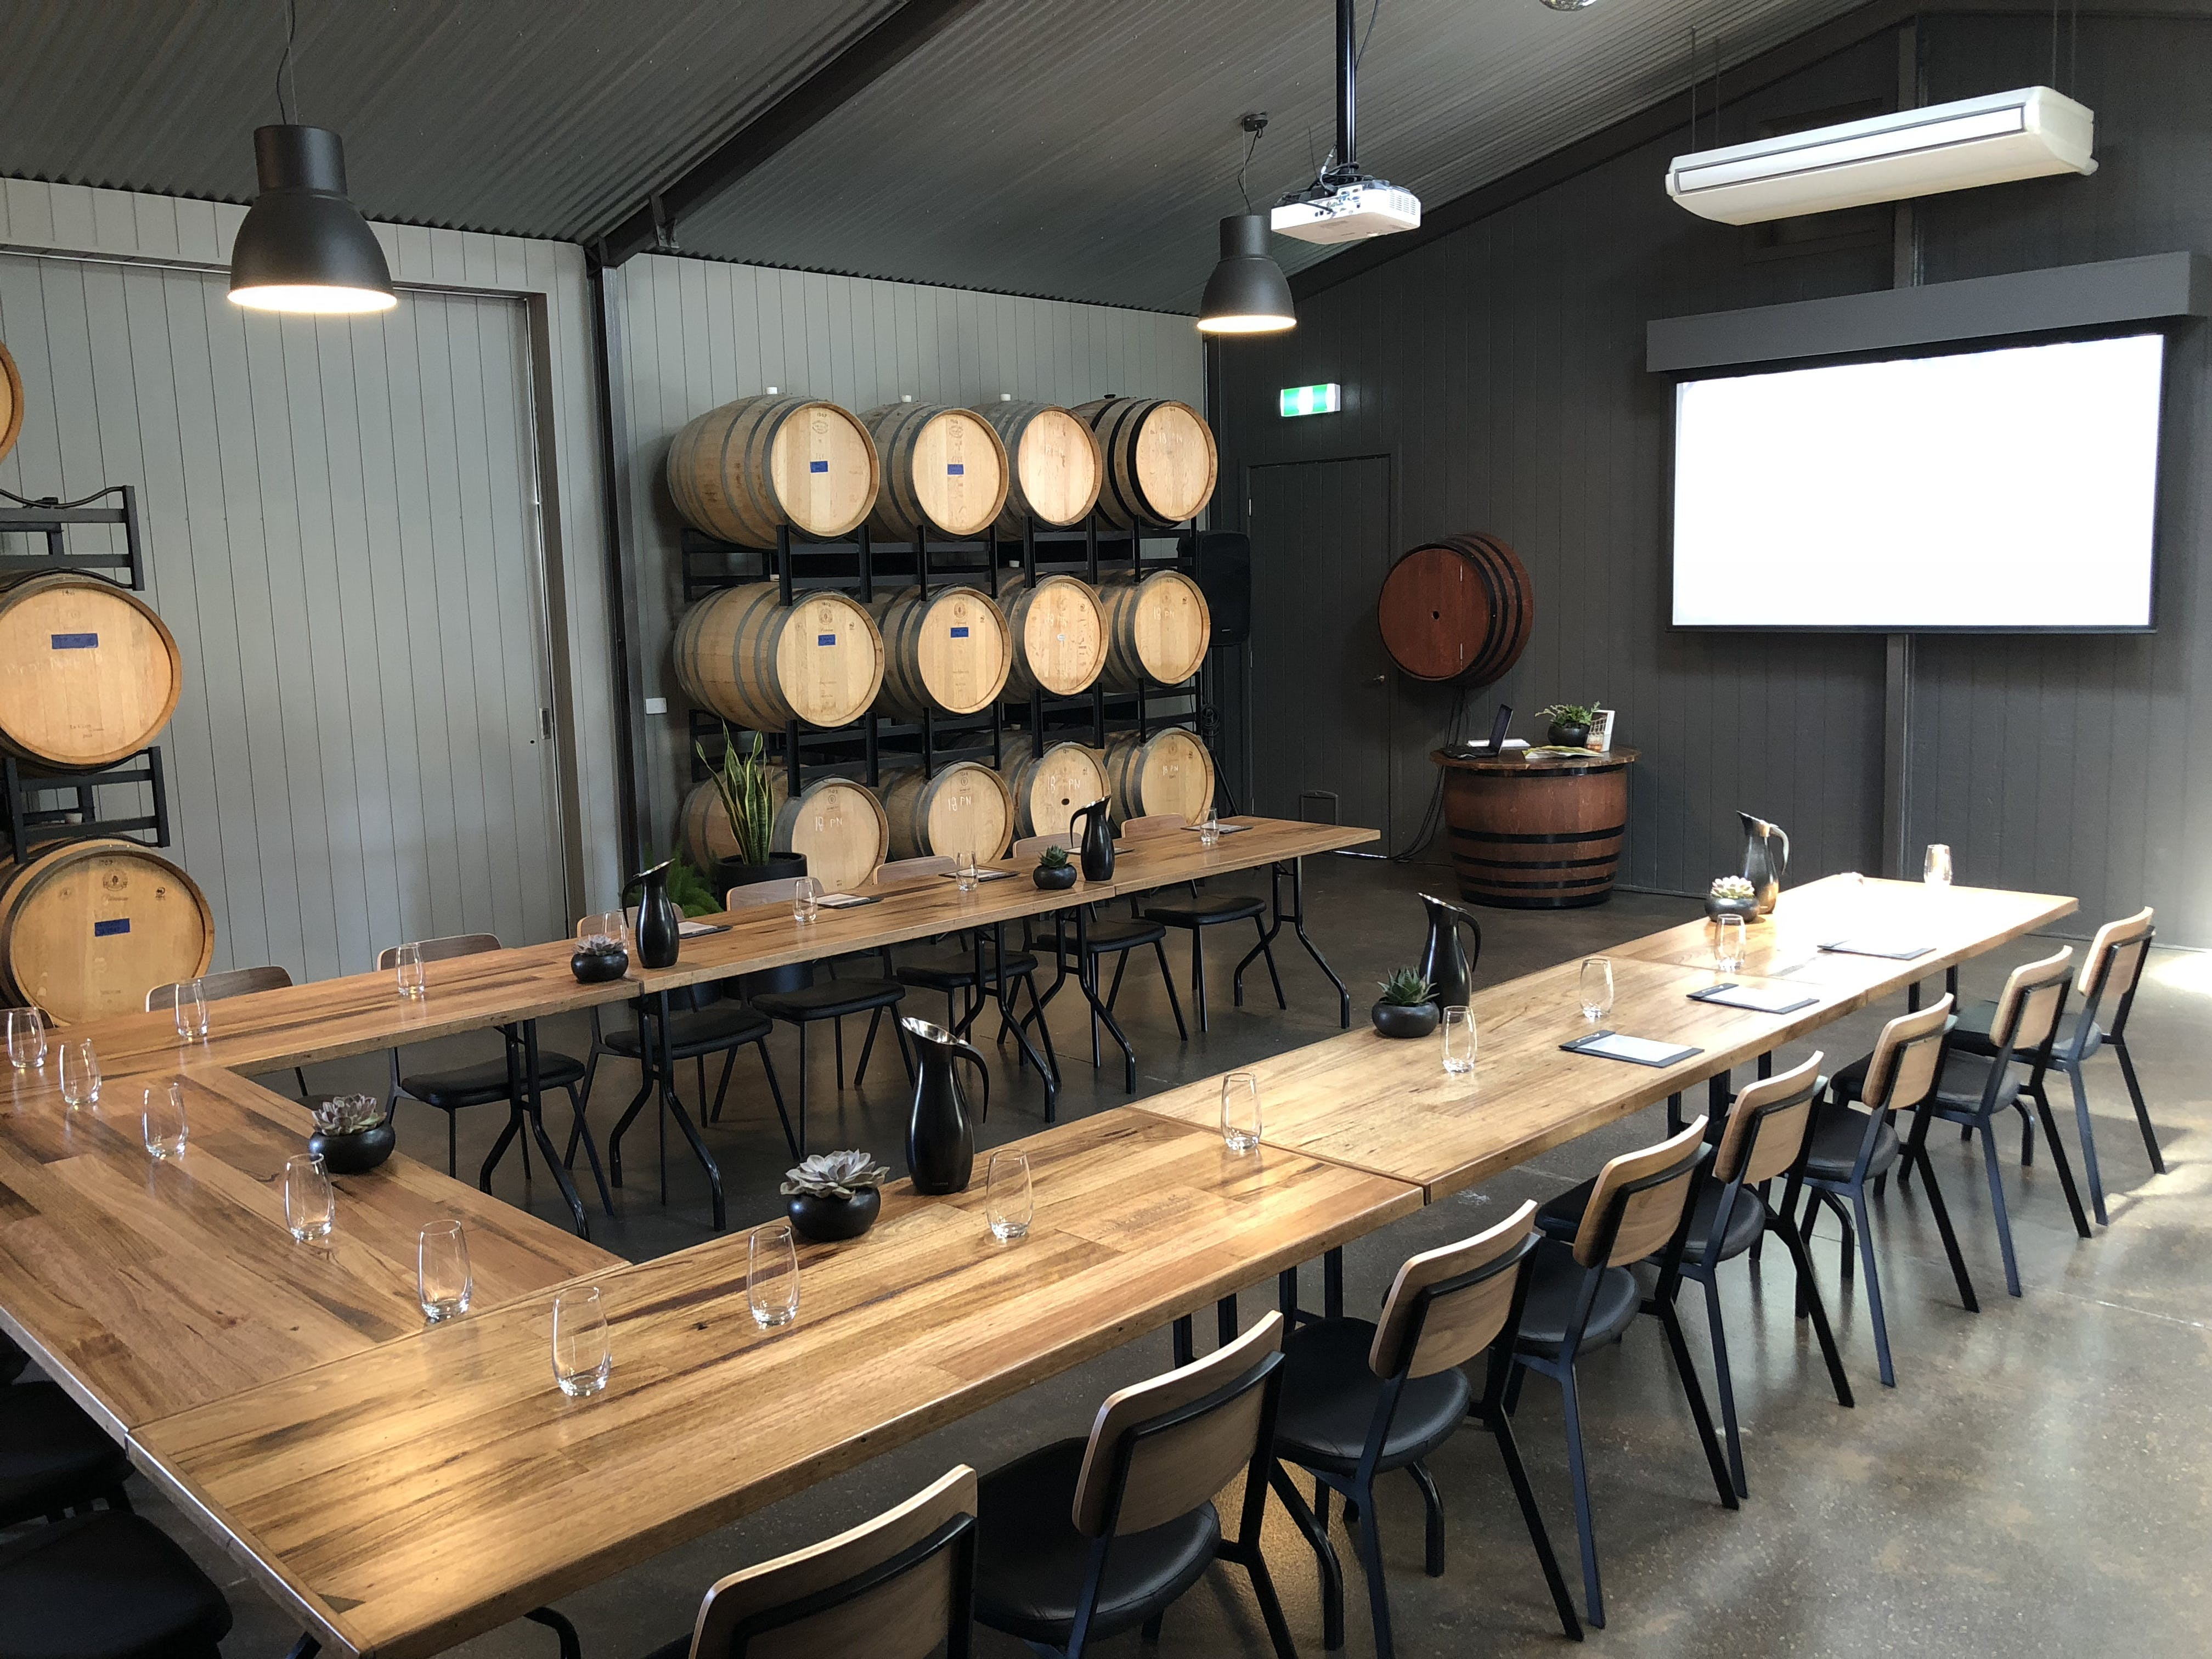 The Barrel Room, multi-use area at Stumpy Gully Barrel Room, image 1